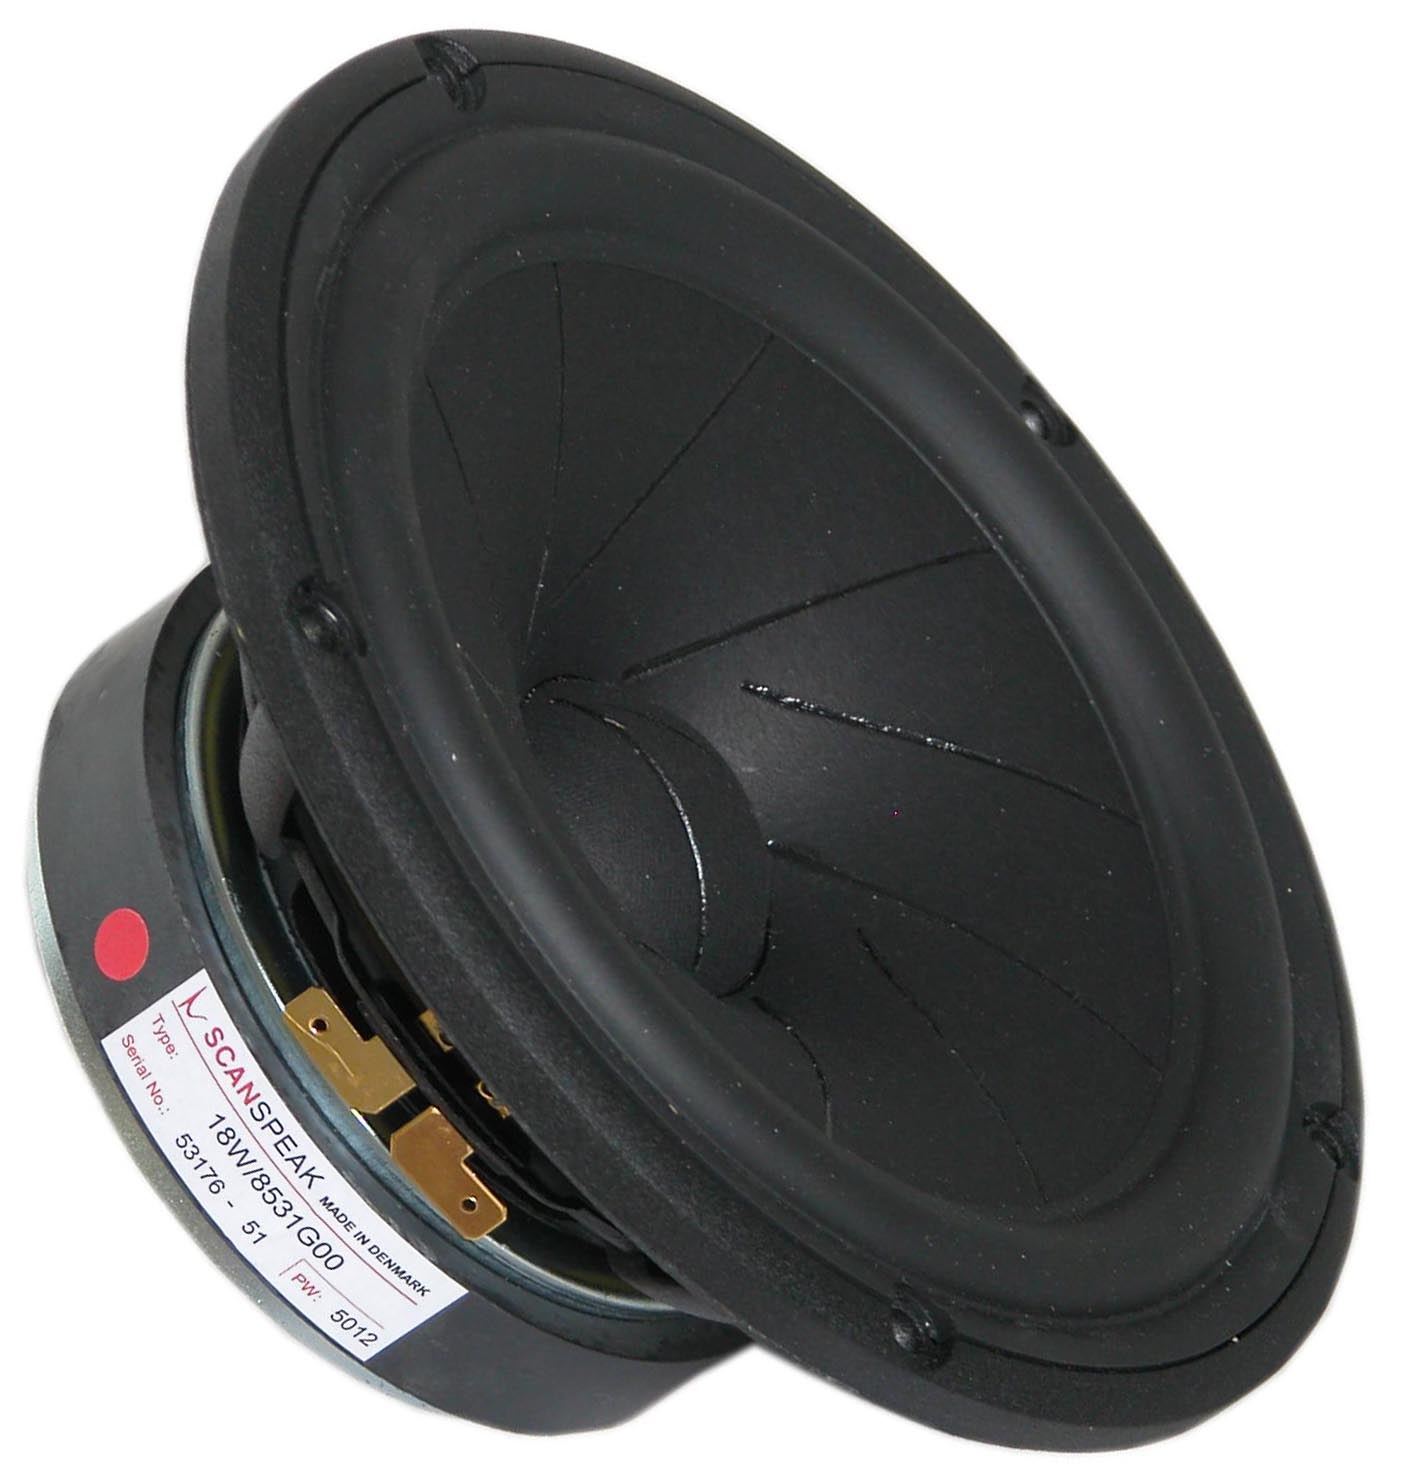 scan-speak-18w-8531g00-mid-woofer-6-5-8-ohm-120-wmax